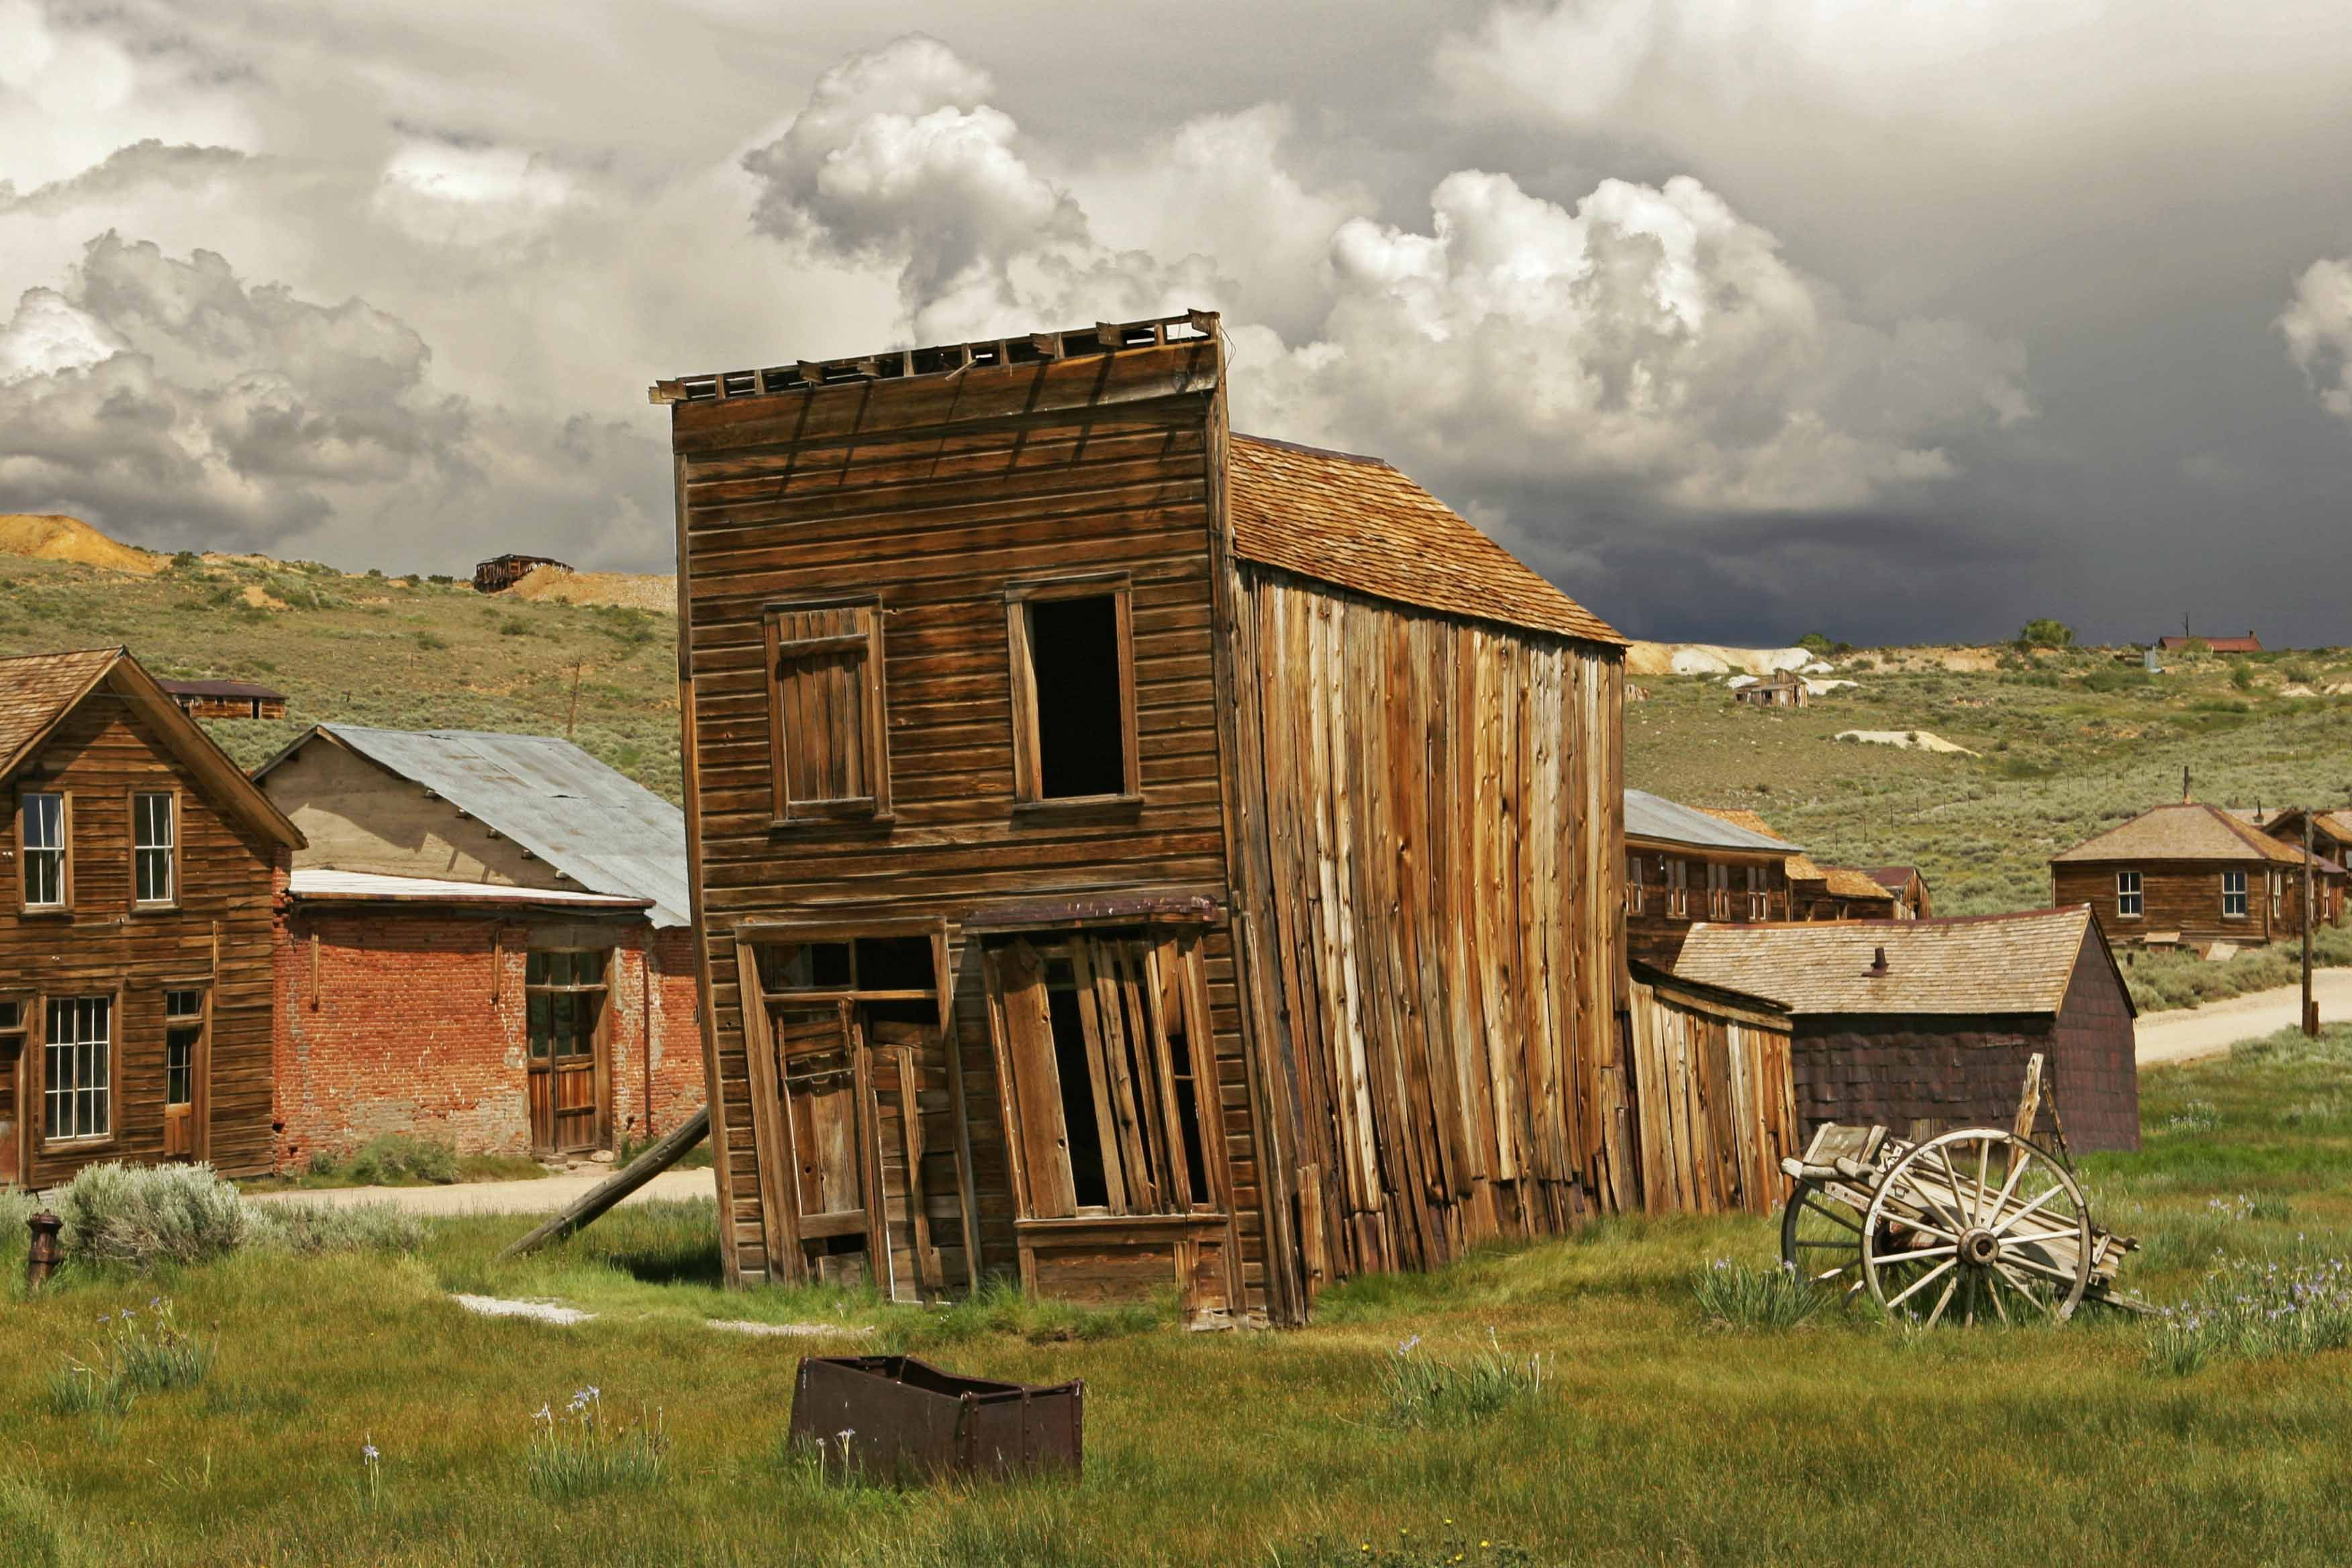 Bodie California Ghost Town Abandoned